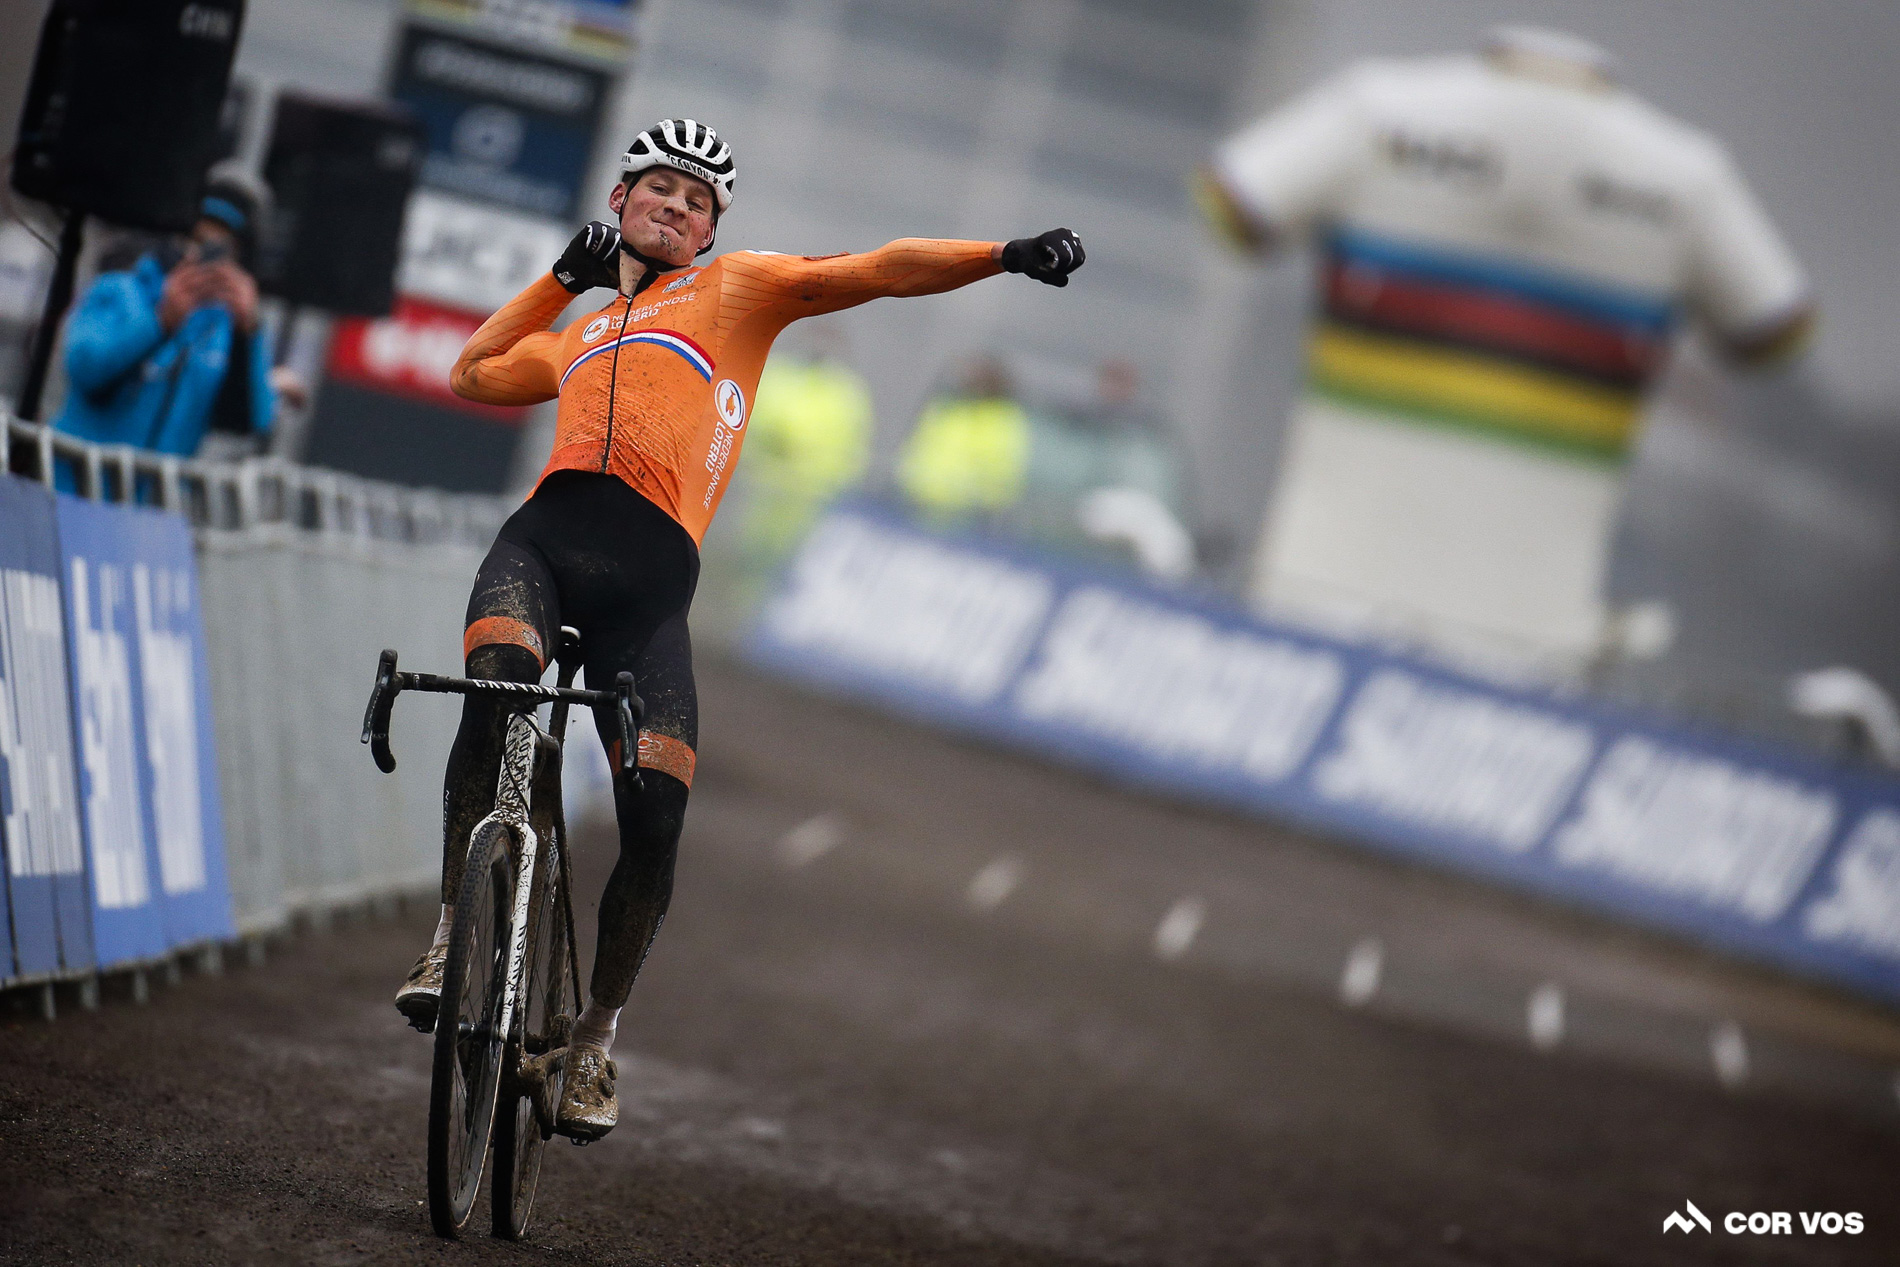 van der poel wins cx worlds climber sprints in france daily news cyclingtips